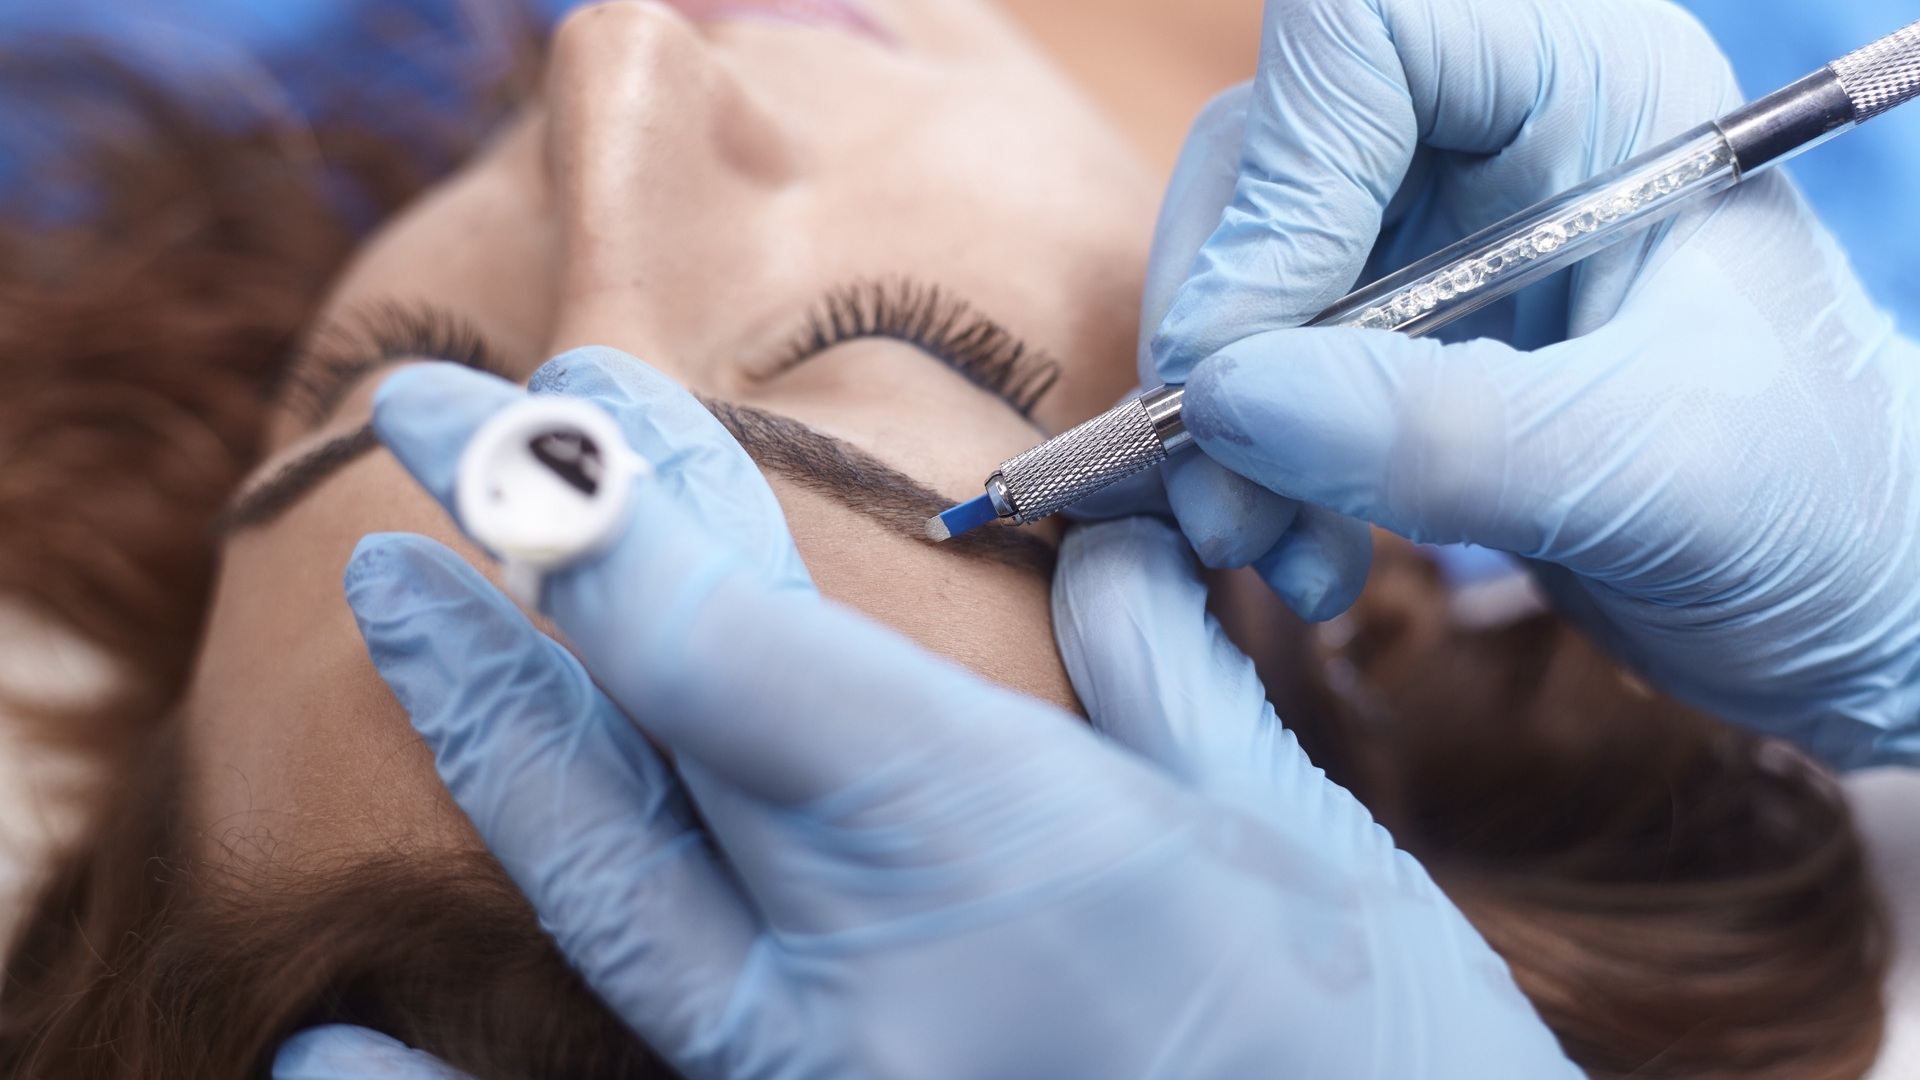 Microblading - Microblading is ideal for anyone wanting to enhance the look of their eyebrows. The results are the most natural looking hair-like strokes, regardless of the amount of hair present.